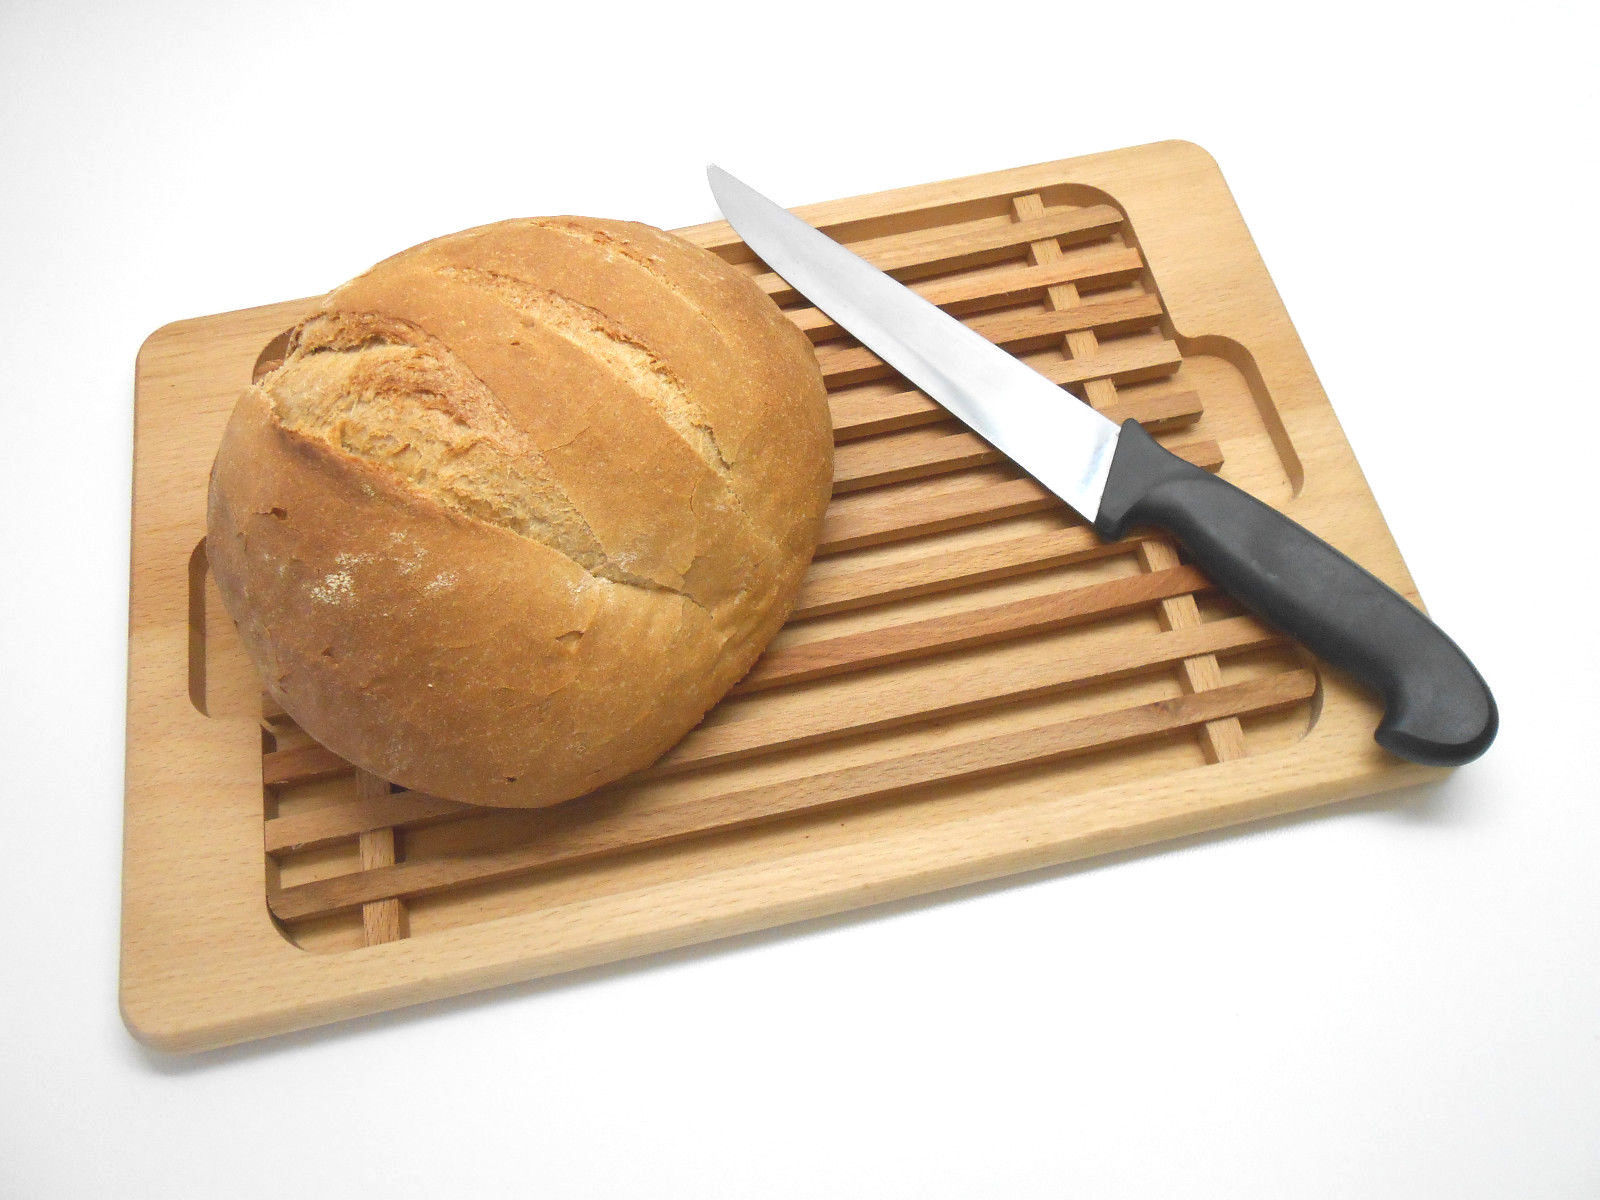 Wooden Bread Cutting Board Crumb Catcher Board 15 inch Long 39 cm